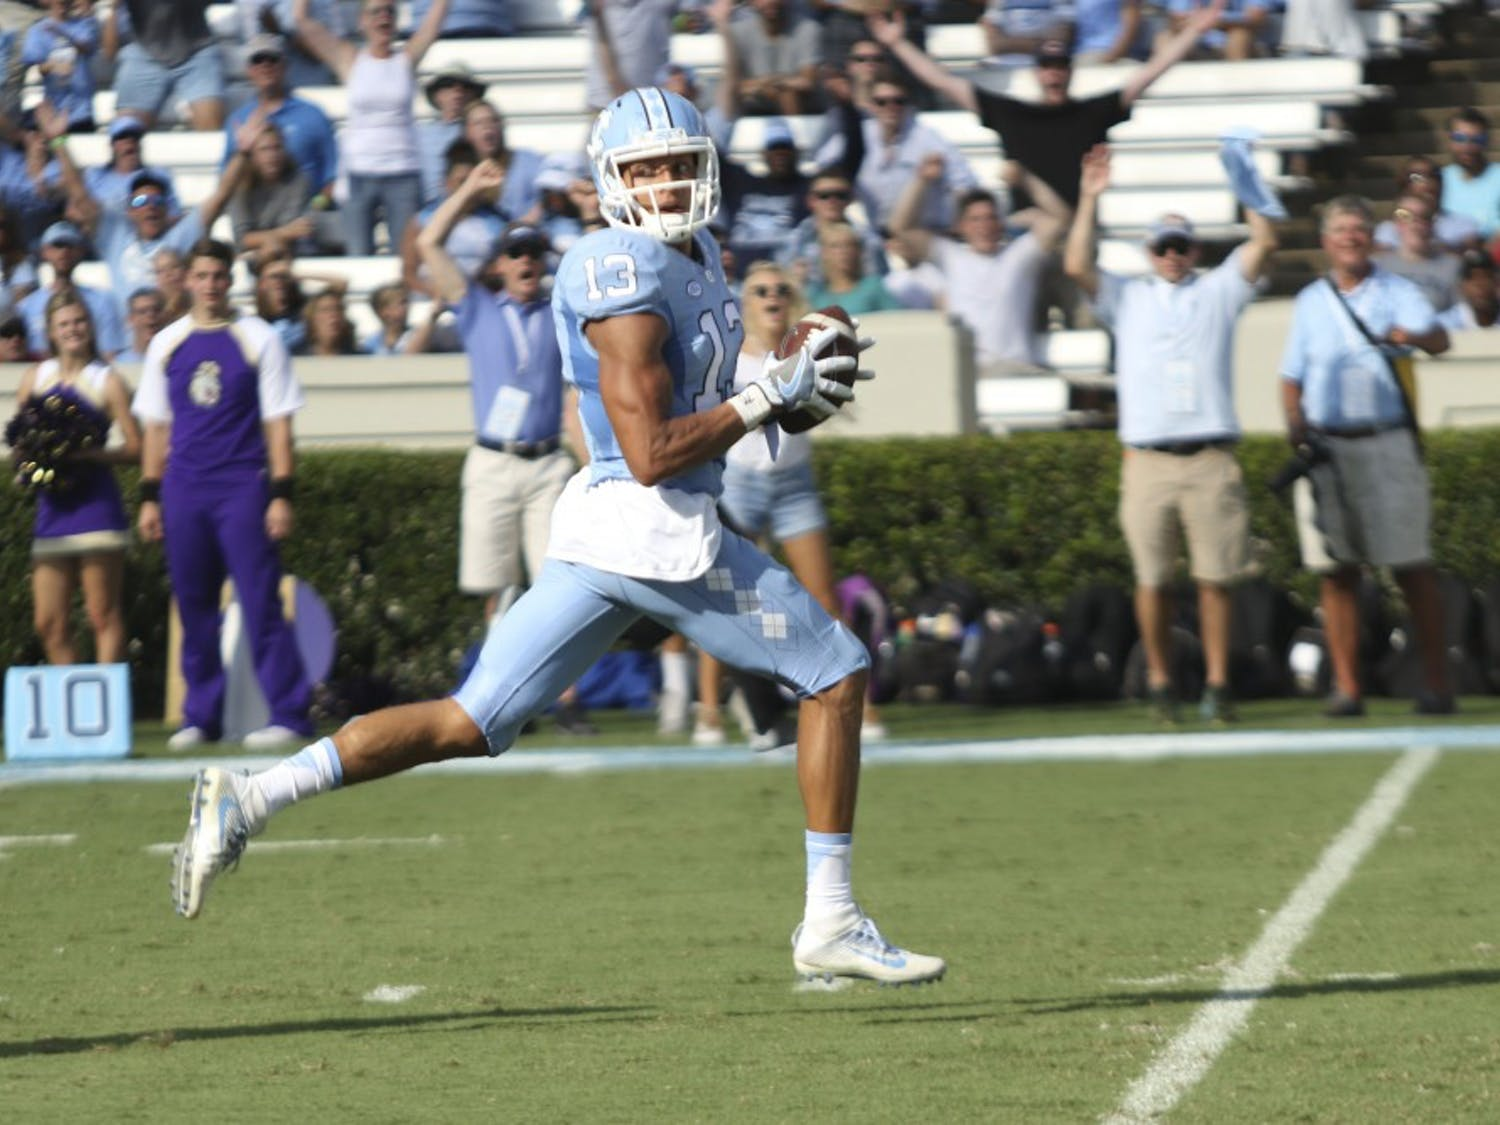 UNC receiver Mack Hollins runs into the end zone for a touchdown against James Madison on Saturday.